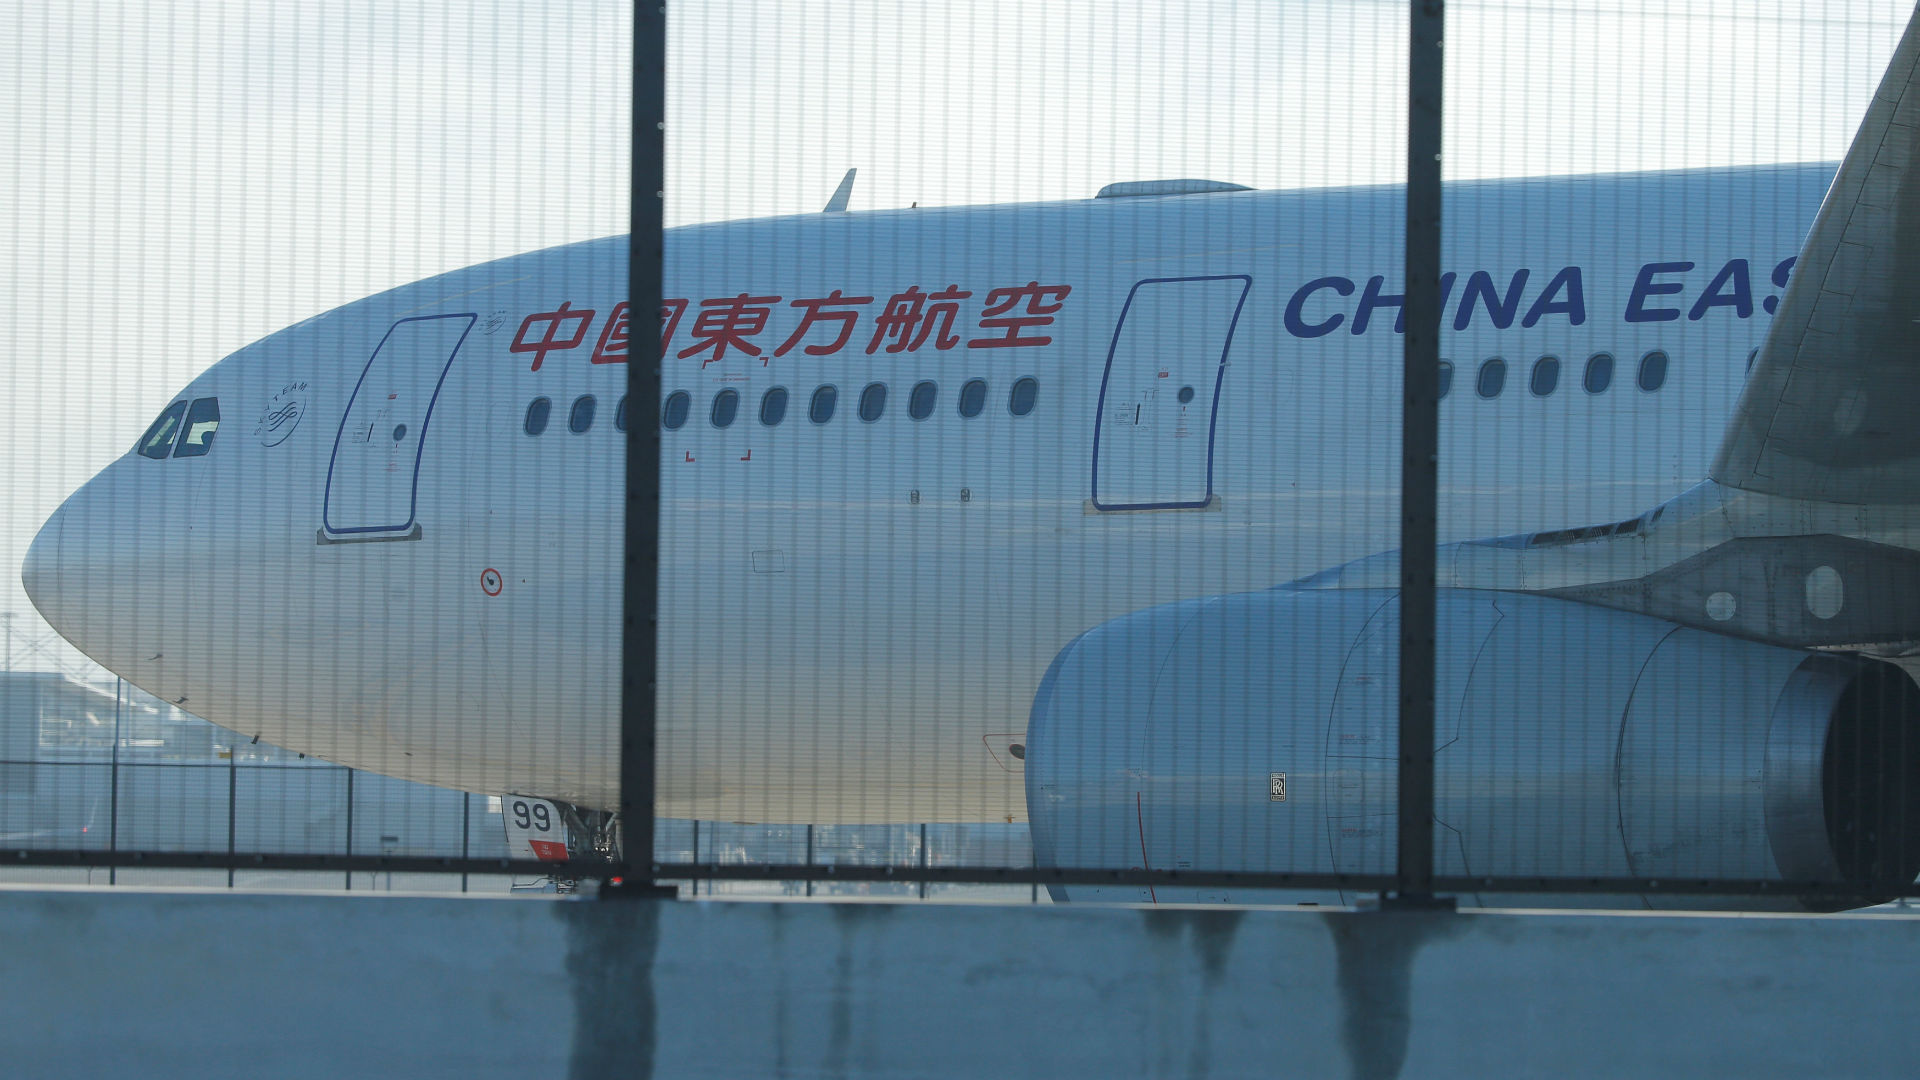 La turbina dañada del avión de China Eastern (Reuters)